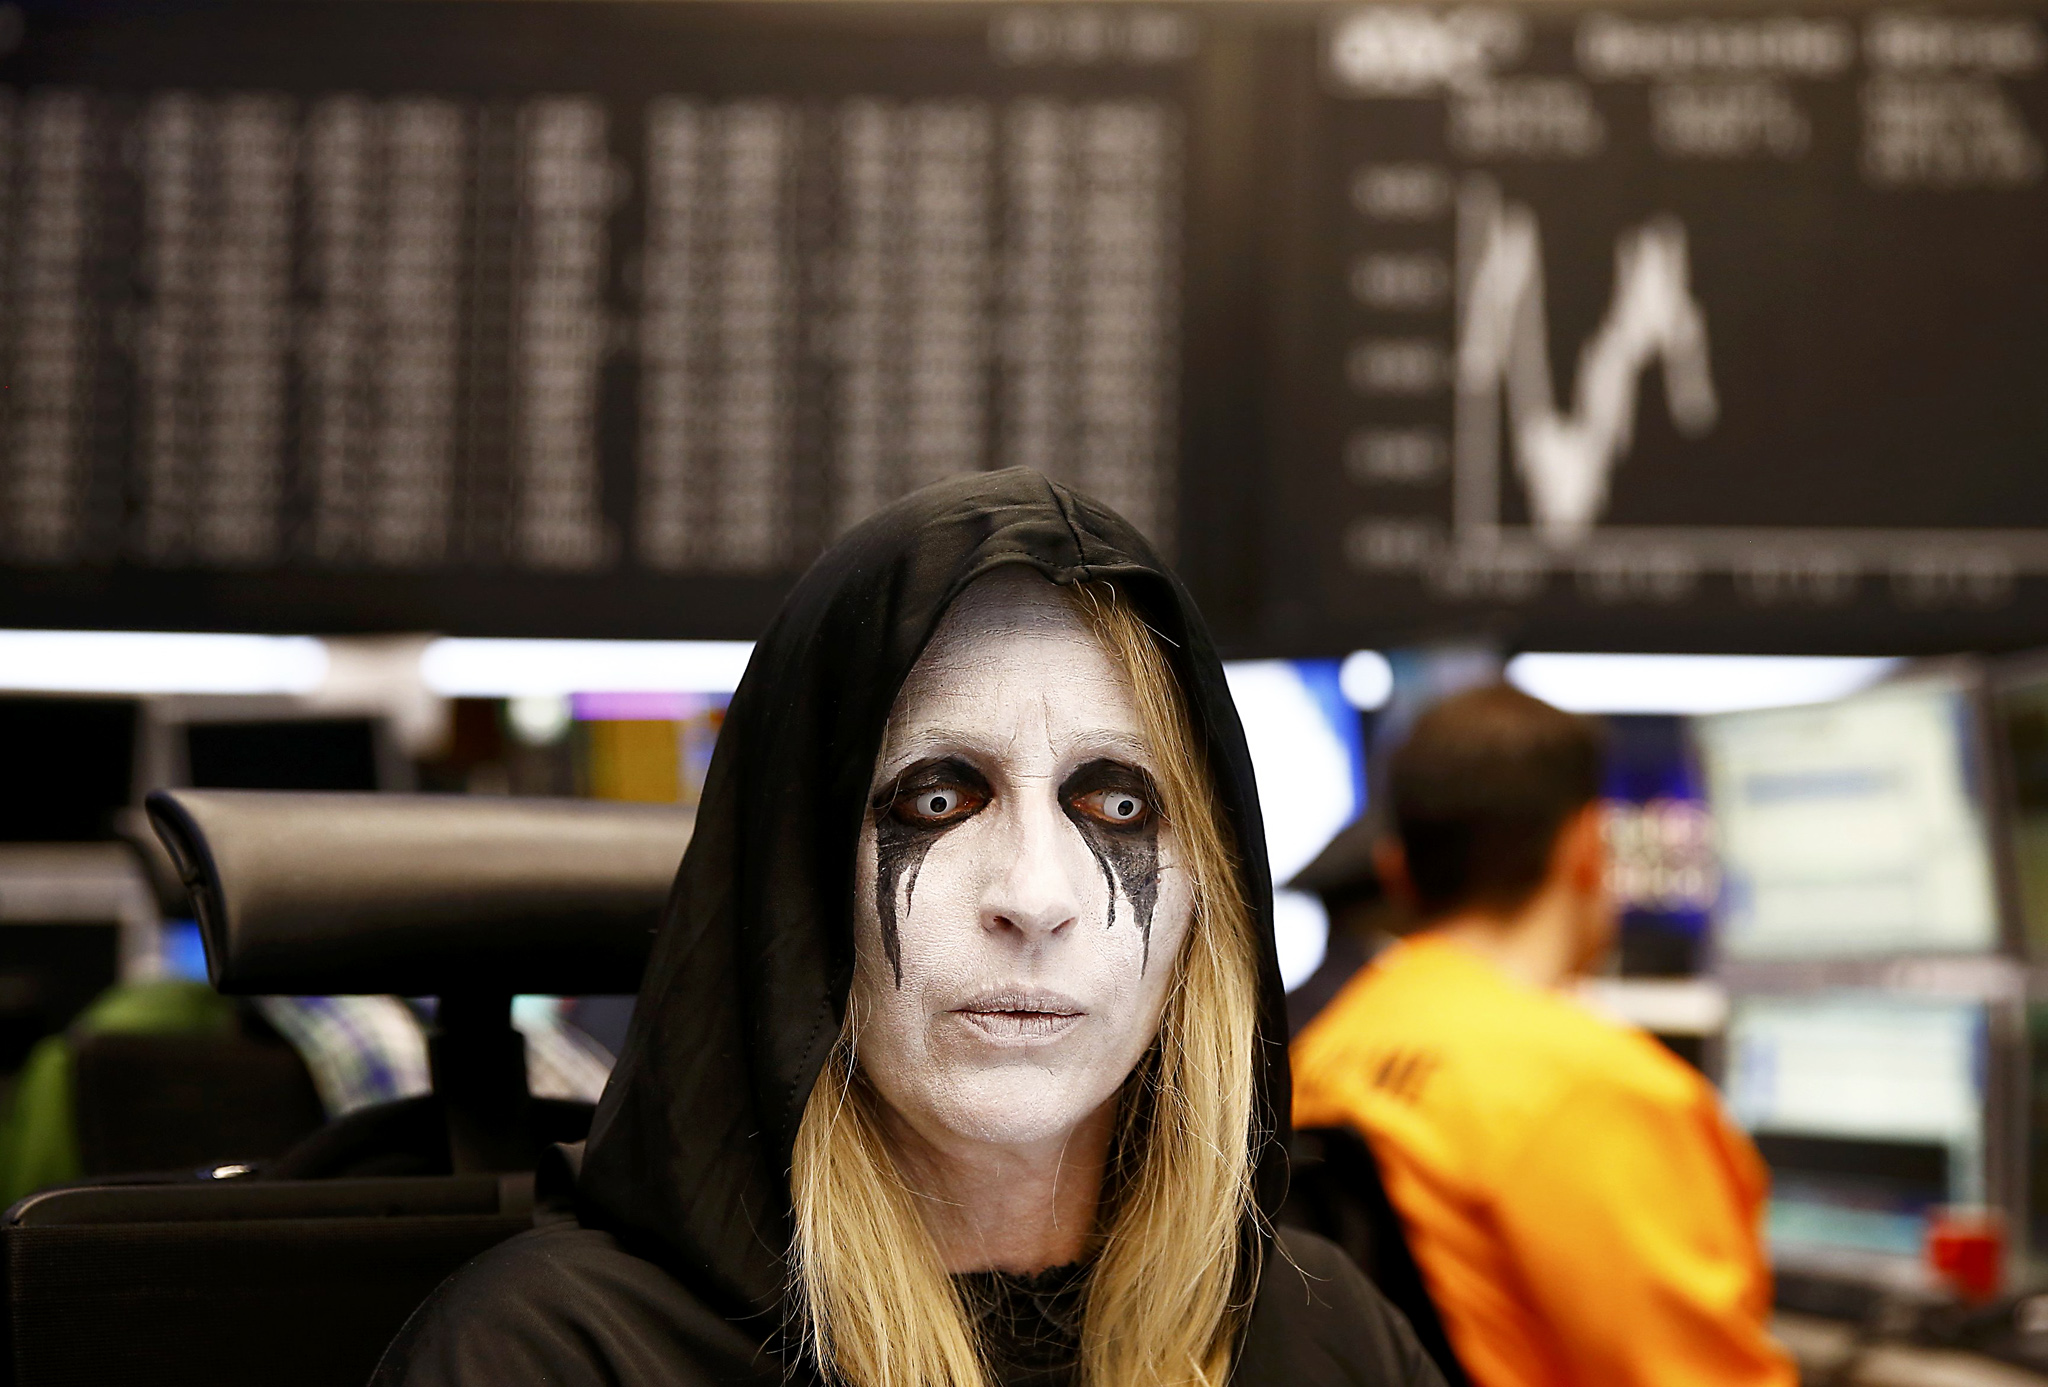 Share traders dressed in carnival costumes work a their desks in front of the DAX index at the stock exchange on Shrove Tuesday in Frankfurt...Share traders dressed in carnival costumes work a their desks in front of the DAX index at the stock exchange on Shrove Tuesday in Frankfurt, Germany February 9, 2016. Frankfurt's bourse traders follow a long tradition by wearing carnival costumes on Shrove Tuesday.  REUTERS/Kai Pfaffenbach